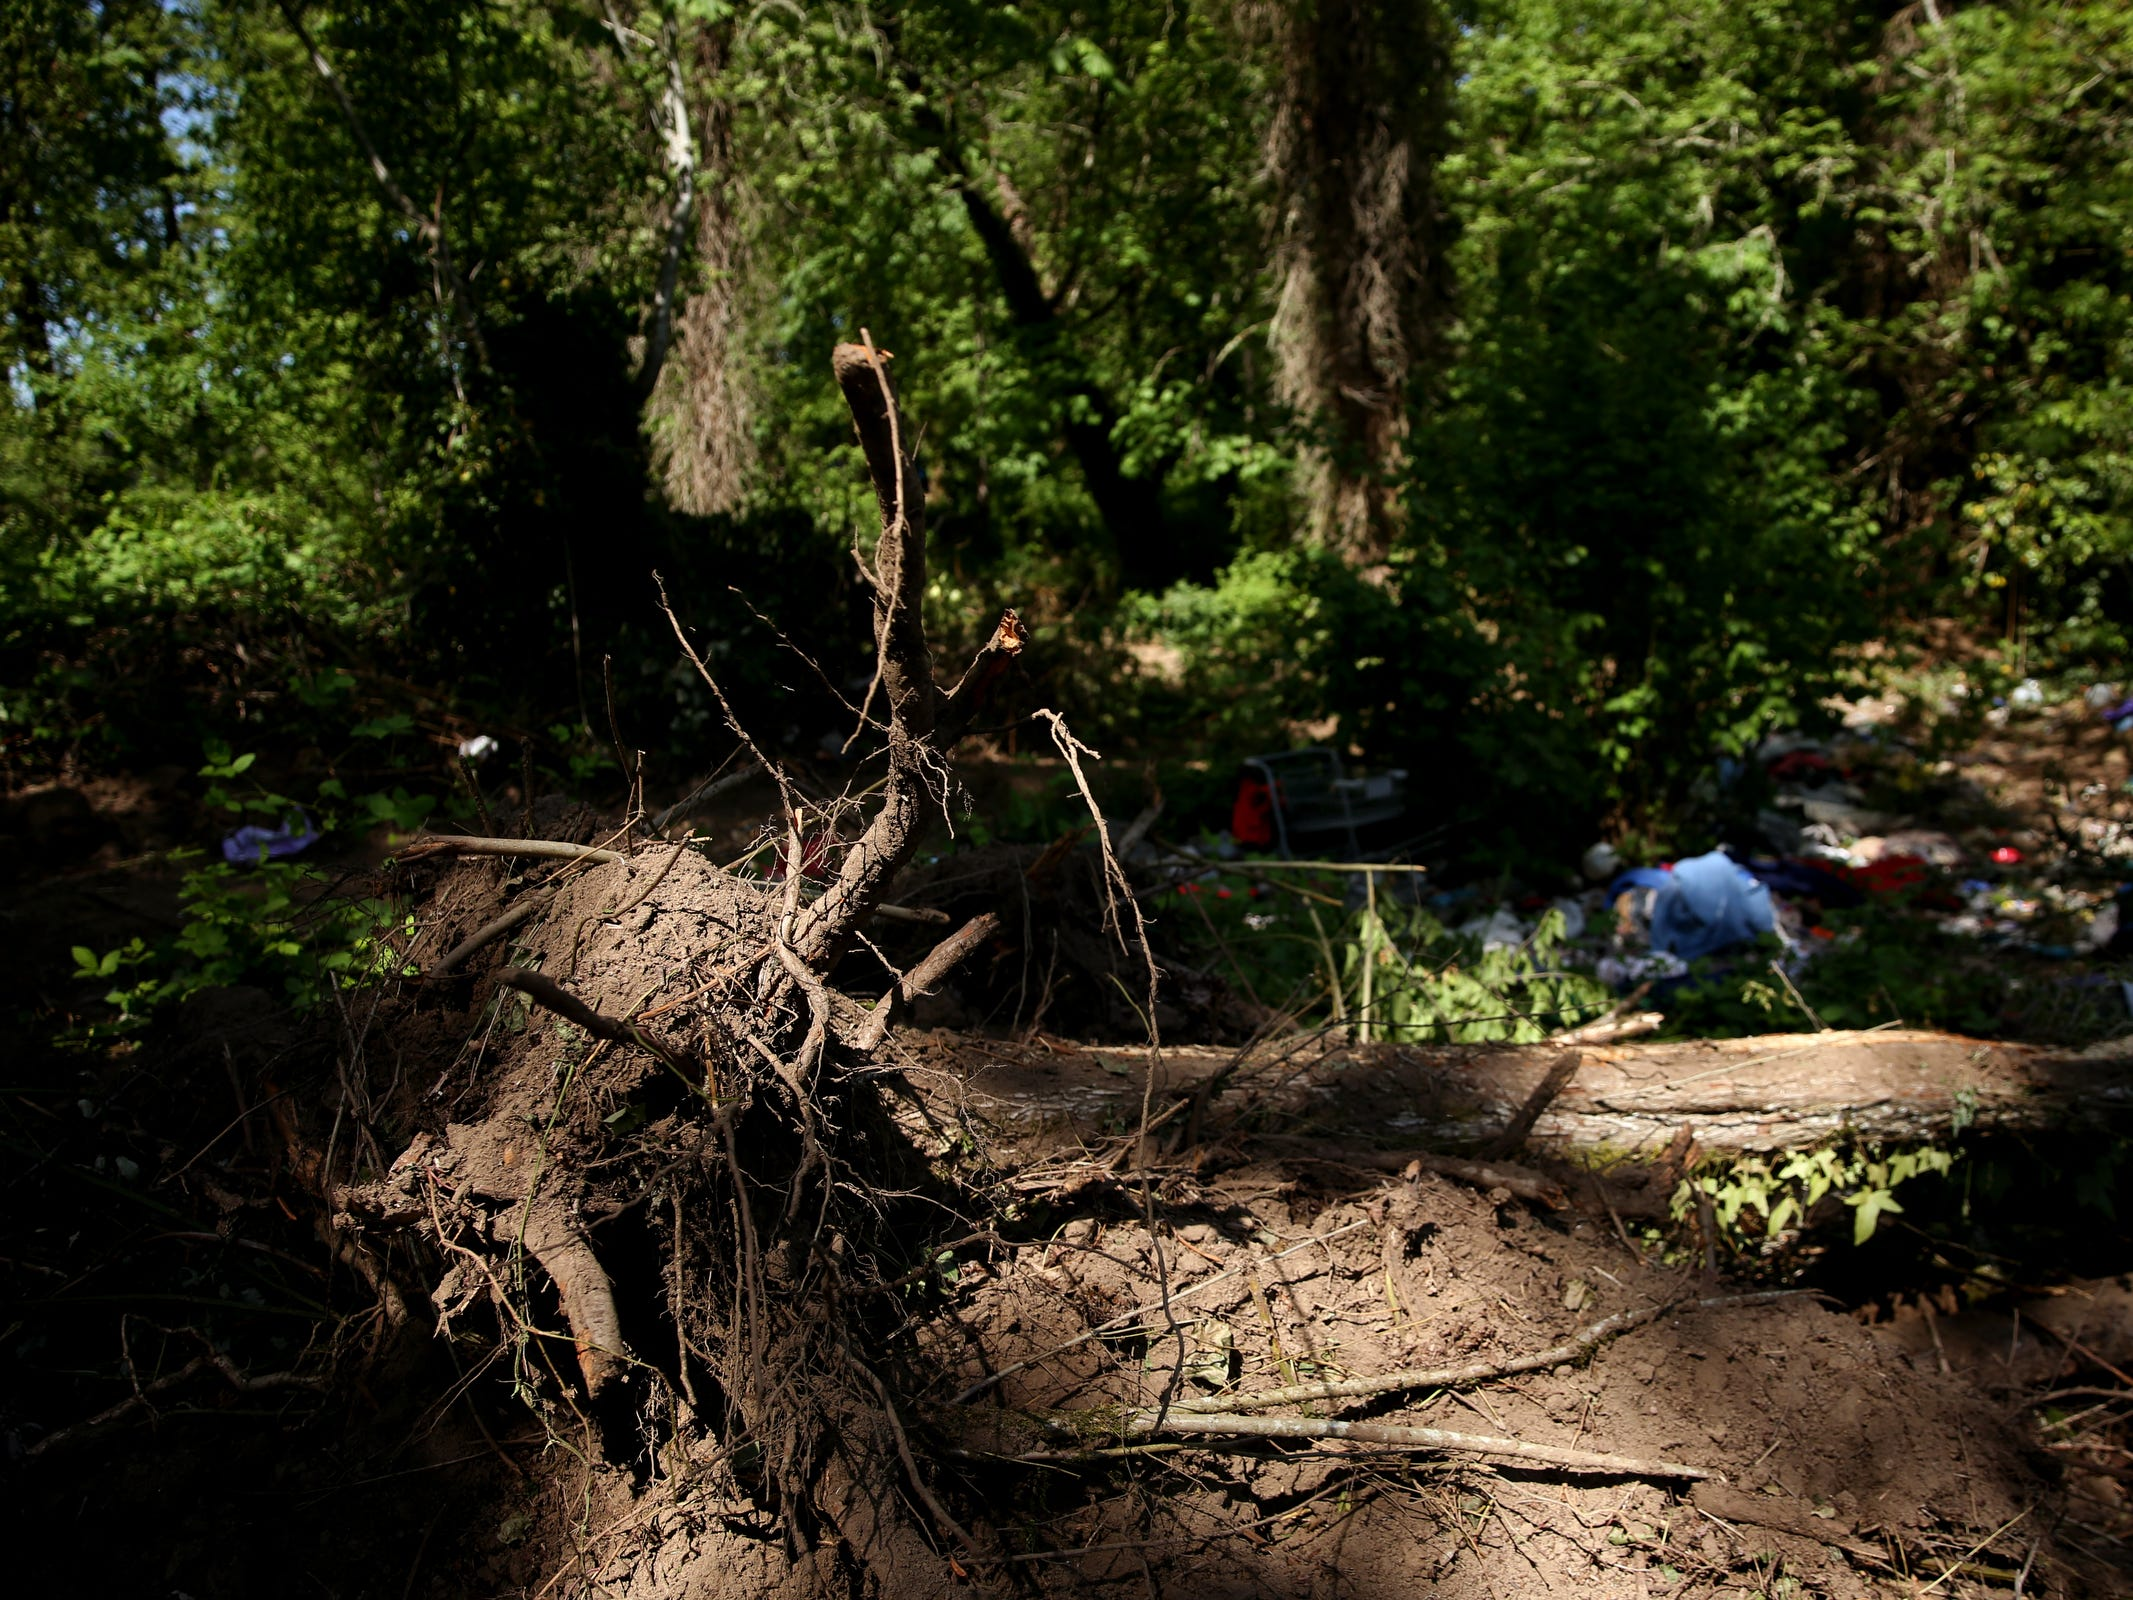 Bulldozer tracks and knocked over trees in a homeless camp near Wallace Marine Park in West Salem on May 6, 2019. Signs were posted throughout the camp recently stating personal property must be removed or it will be taken by the landowner and its designated agent starting May 7.